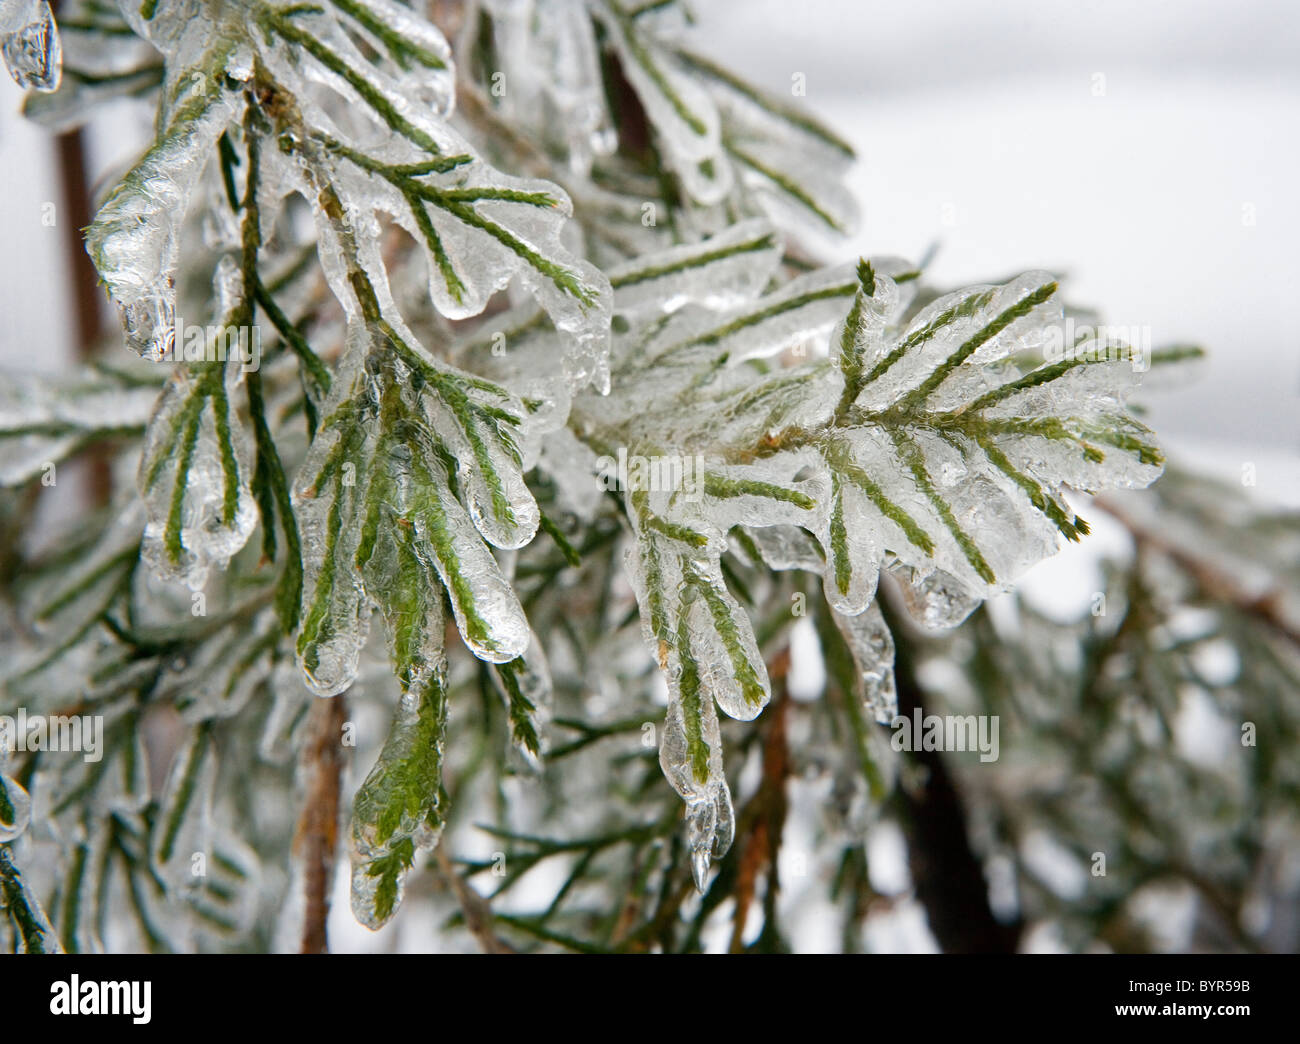 An ice storm has covered plants, trees, and shrubs with a coating of ice - Stock Image